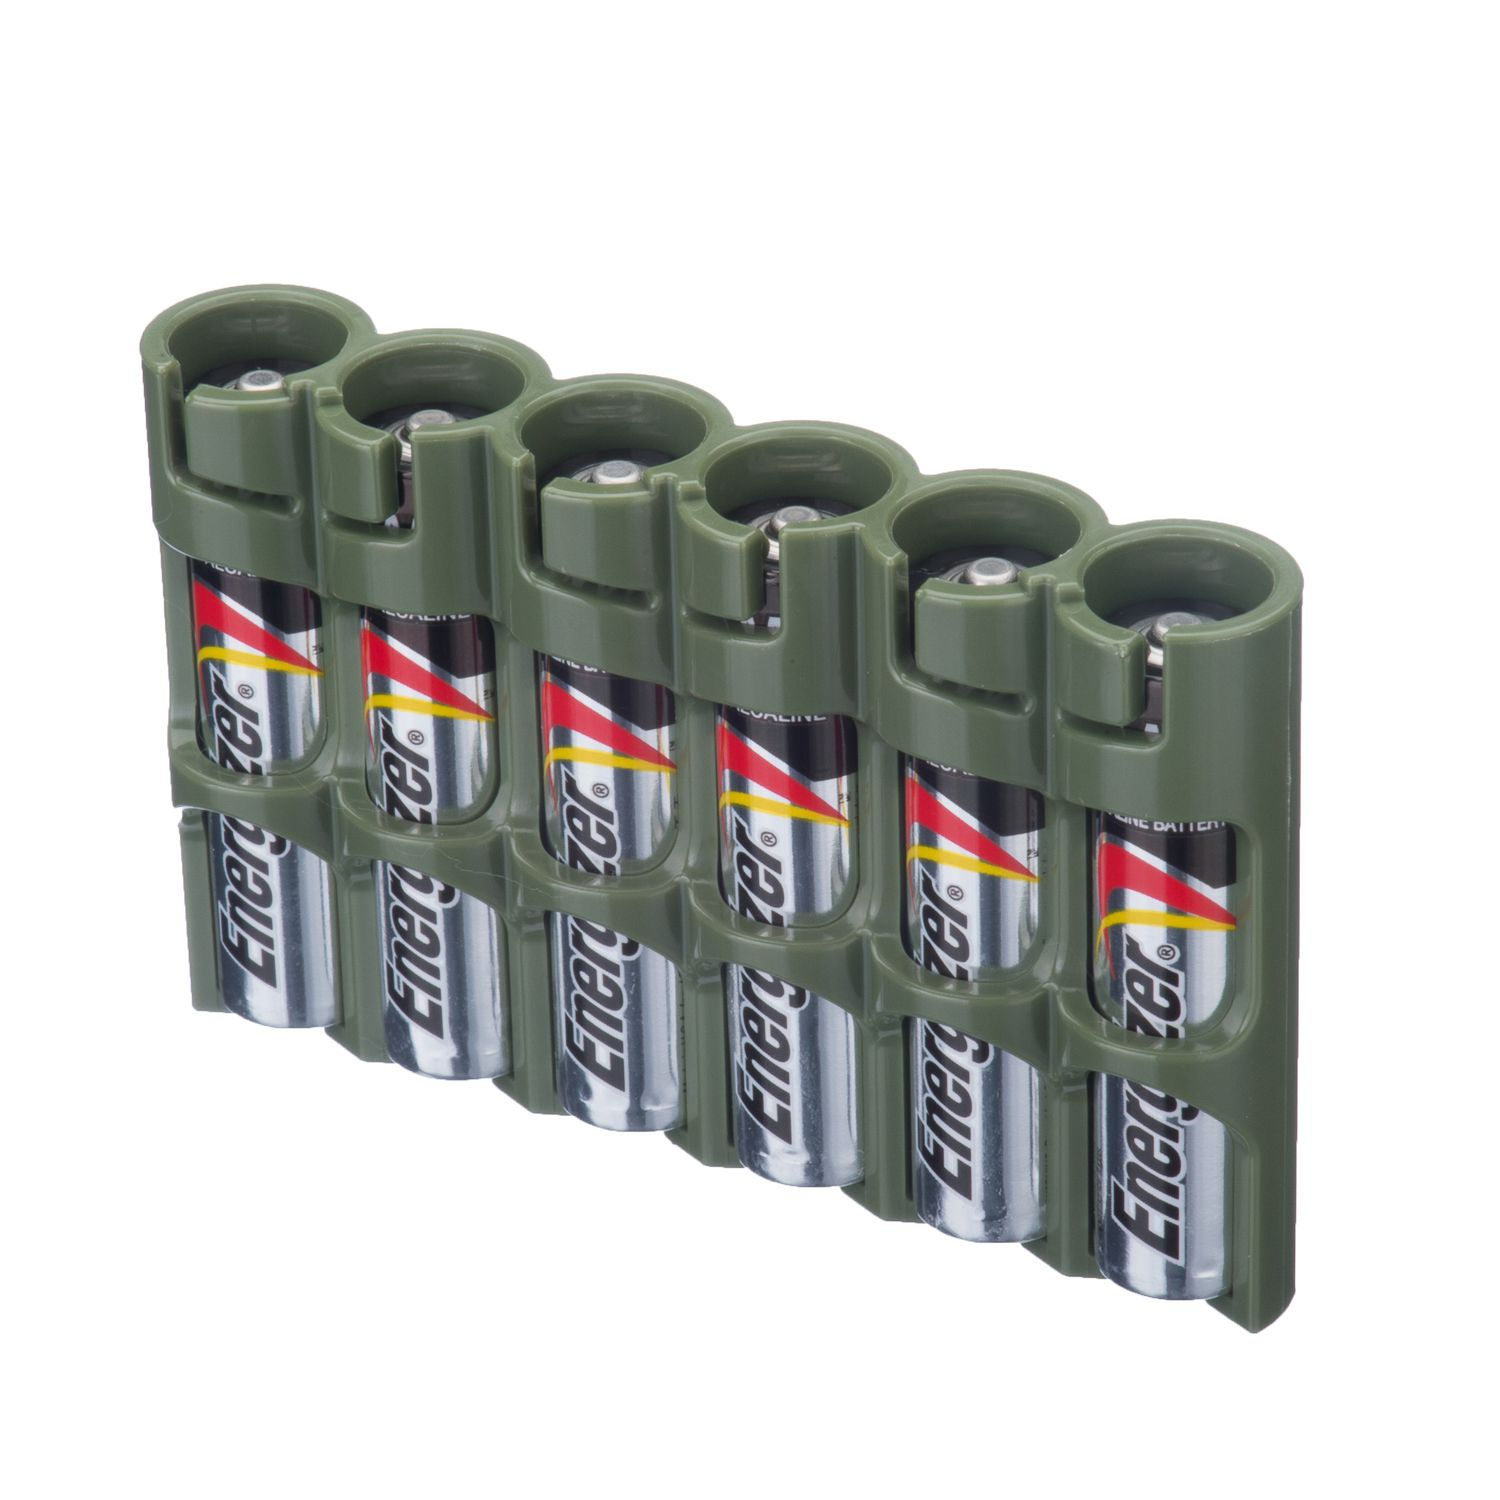 Aaa Battery Case Aaa Battery Cases Military Green Battery Cases Military Gear Tactical Tactical Gear Survival